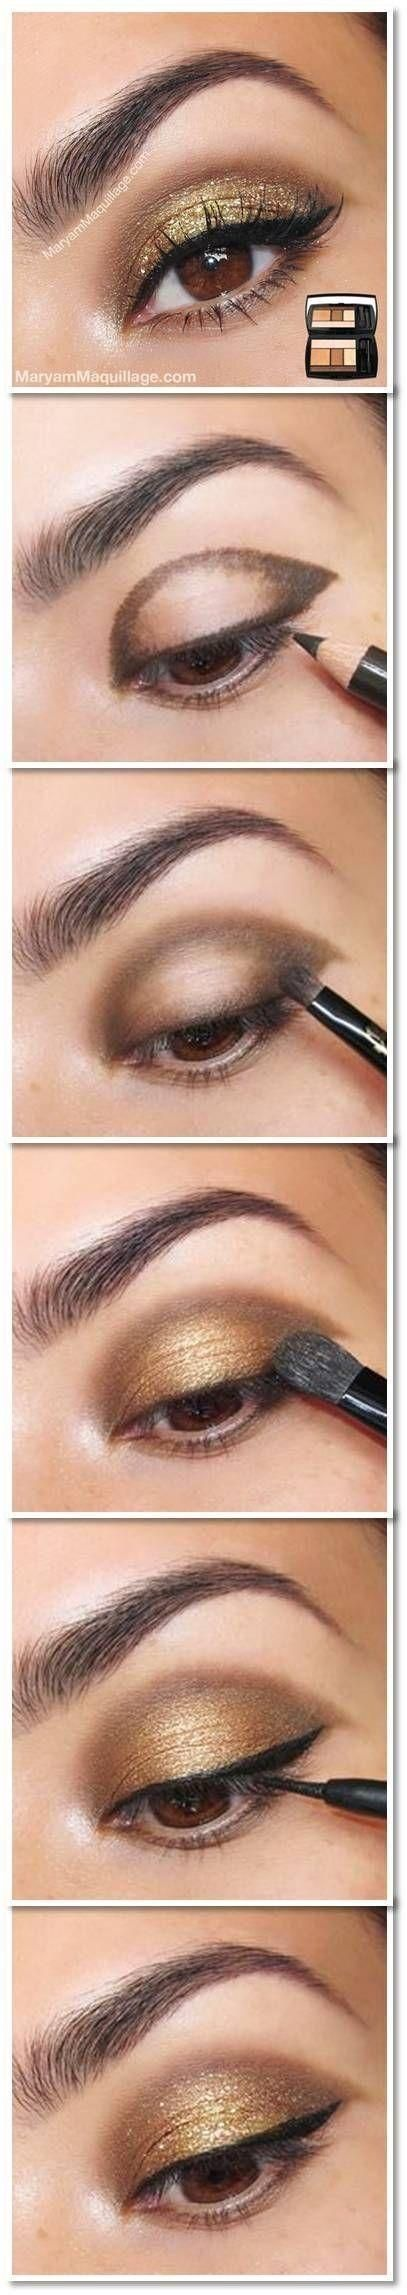 Glittery gold and brown eye makeup